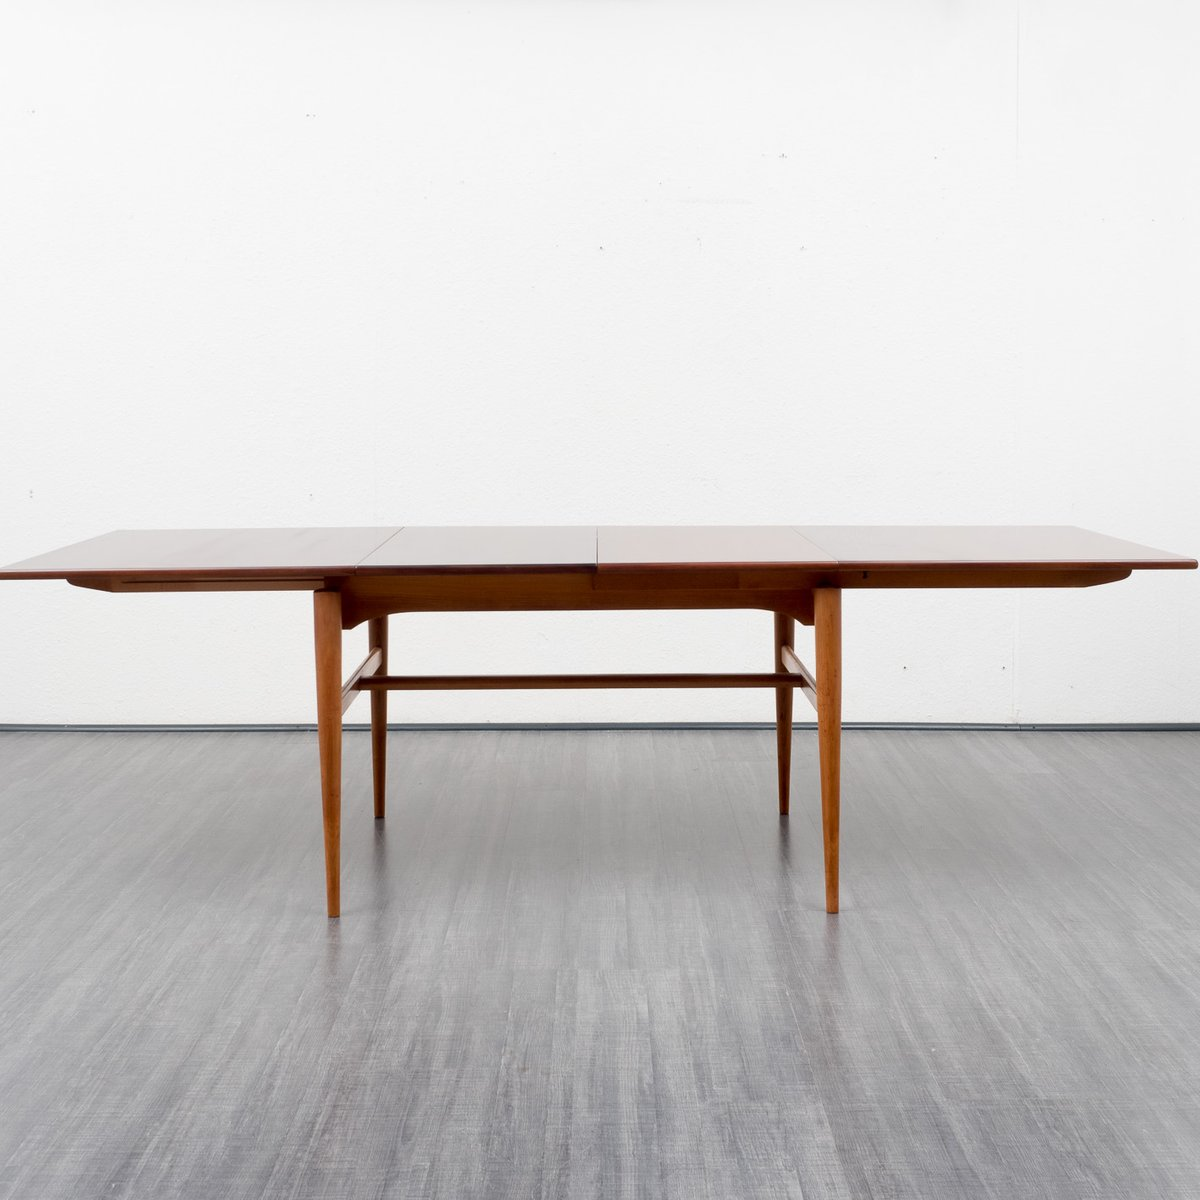 Extendible cherry dining table 1960s for sale at pamono for Cherry dining table